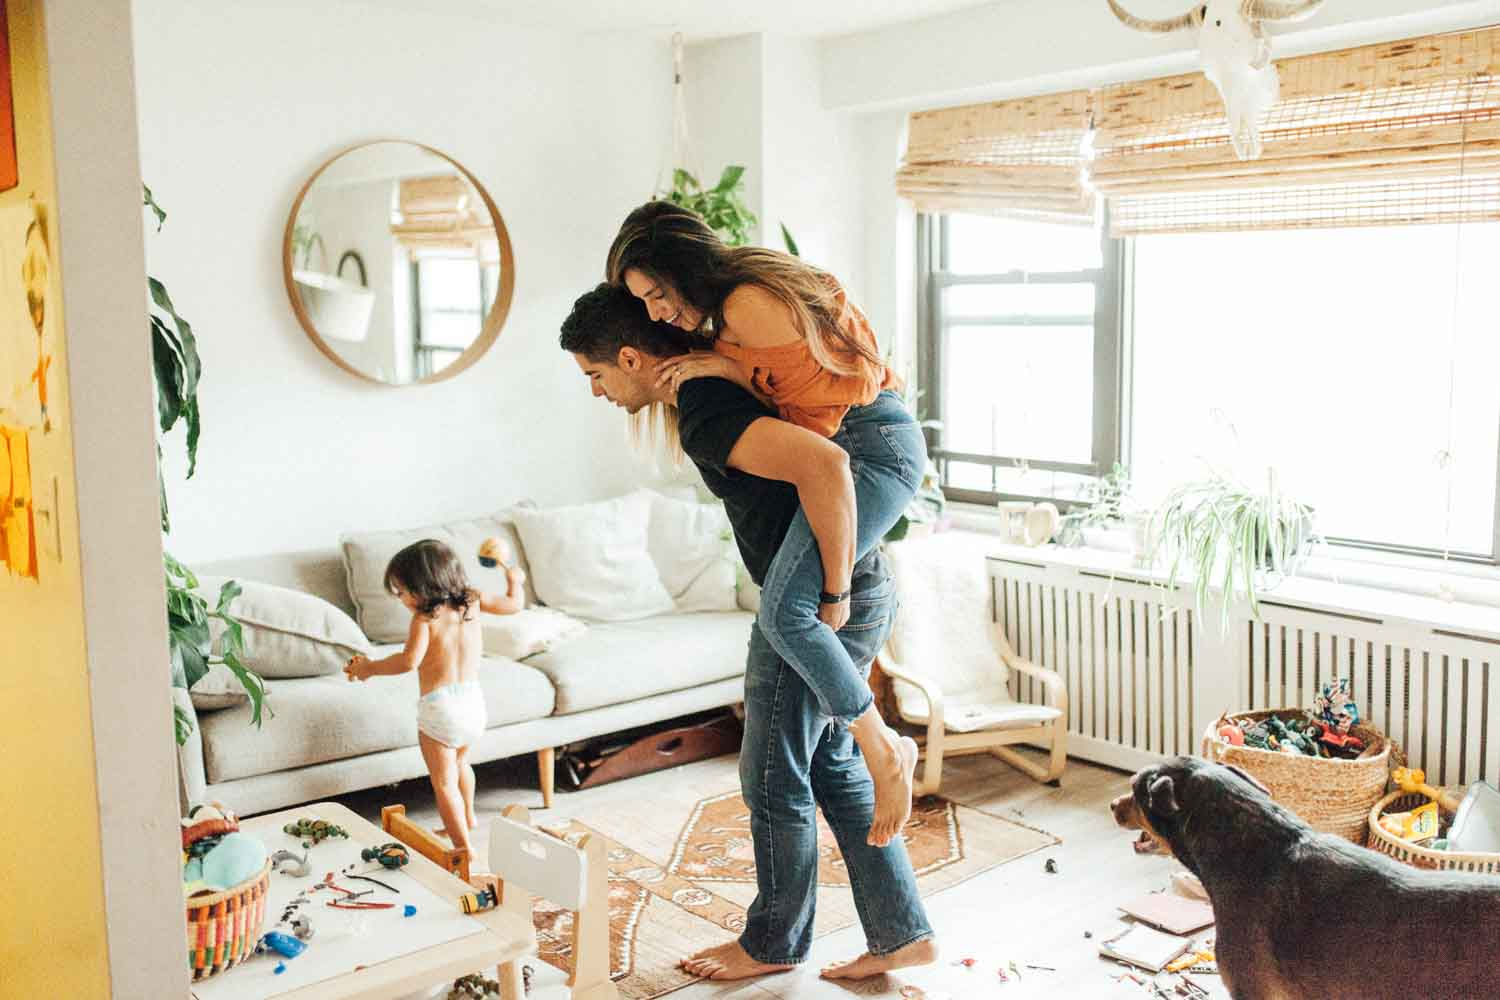 natural-and-artistic-piggy-back-ride-in-living-room-during-at-home-session-with-jen-fairchild-photography-new-york-city-ny